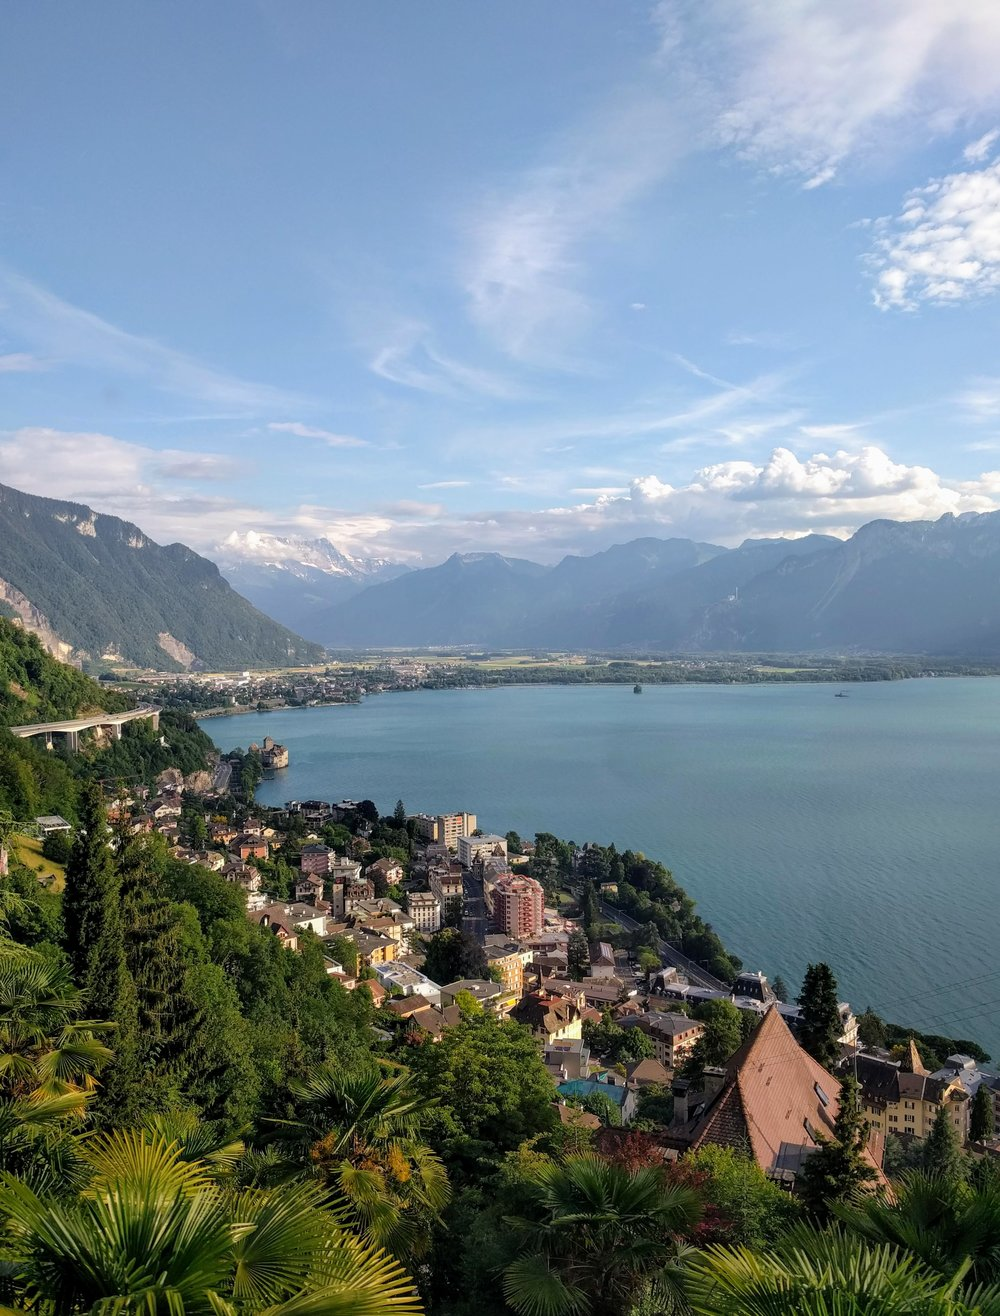 The view of Lac Léman from the cogwheel train up to Haut de Caux, where I was staying. Not bad, huh?